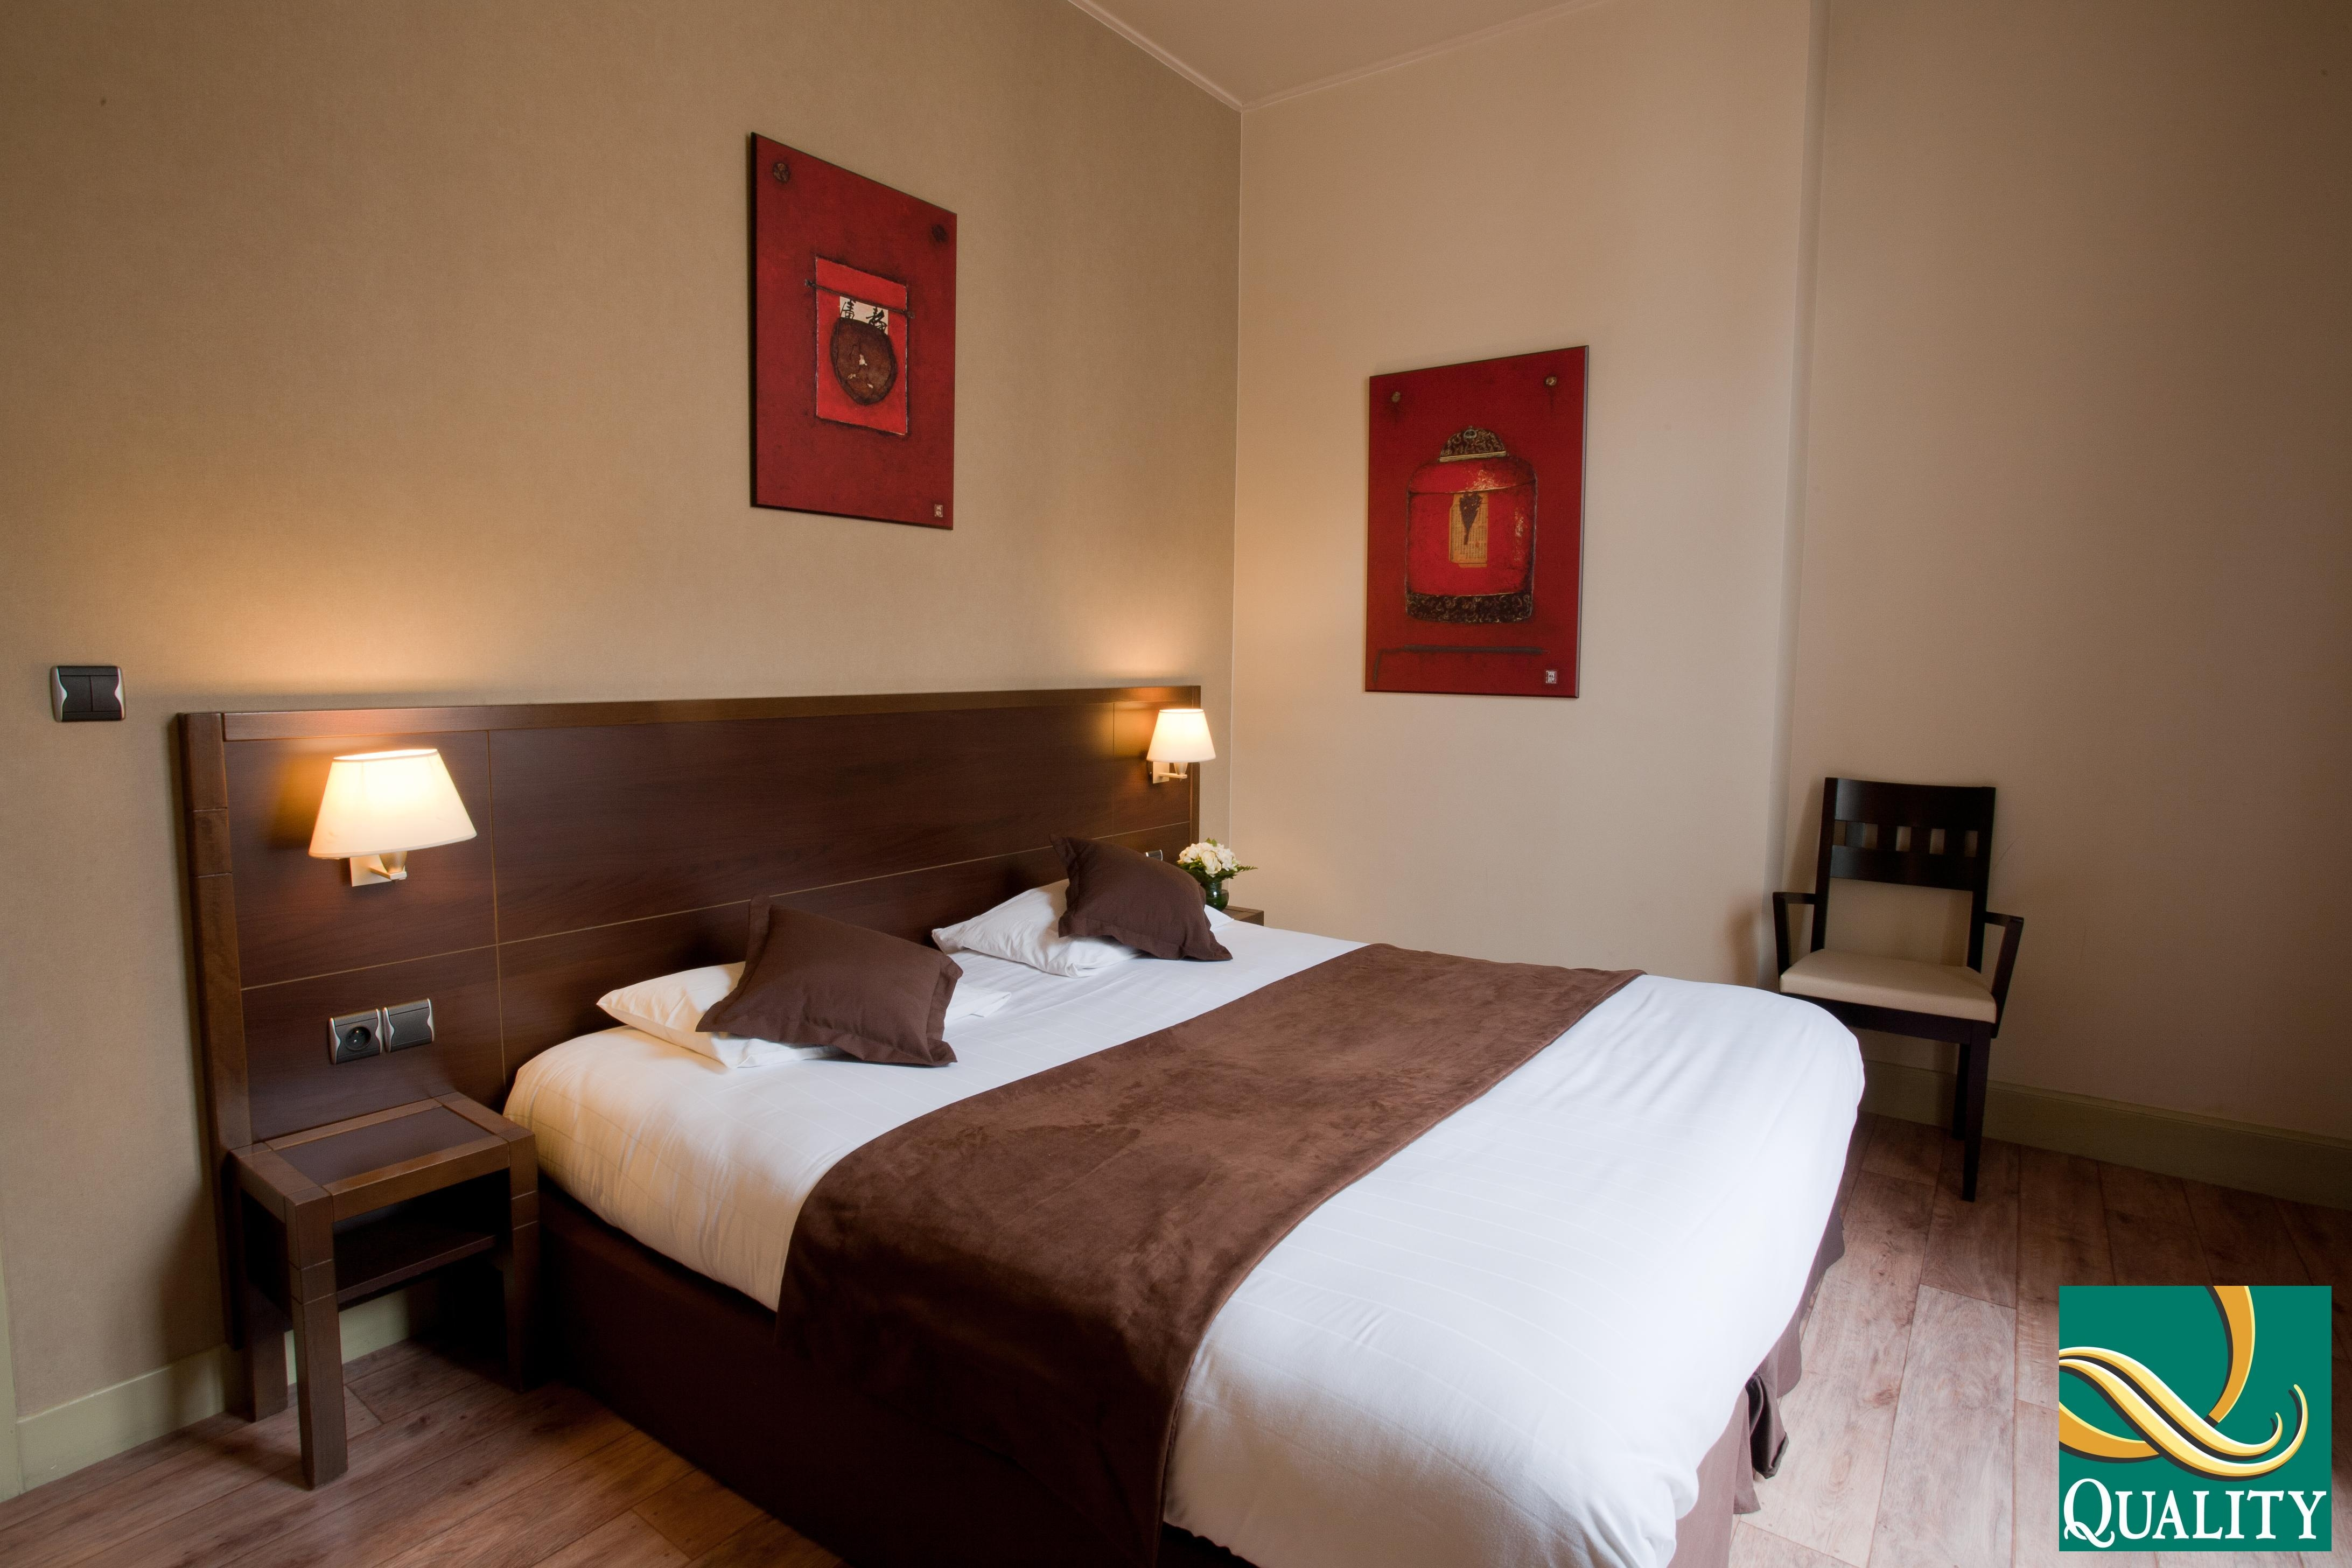 Quality Hotel Orleans Centre